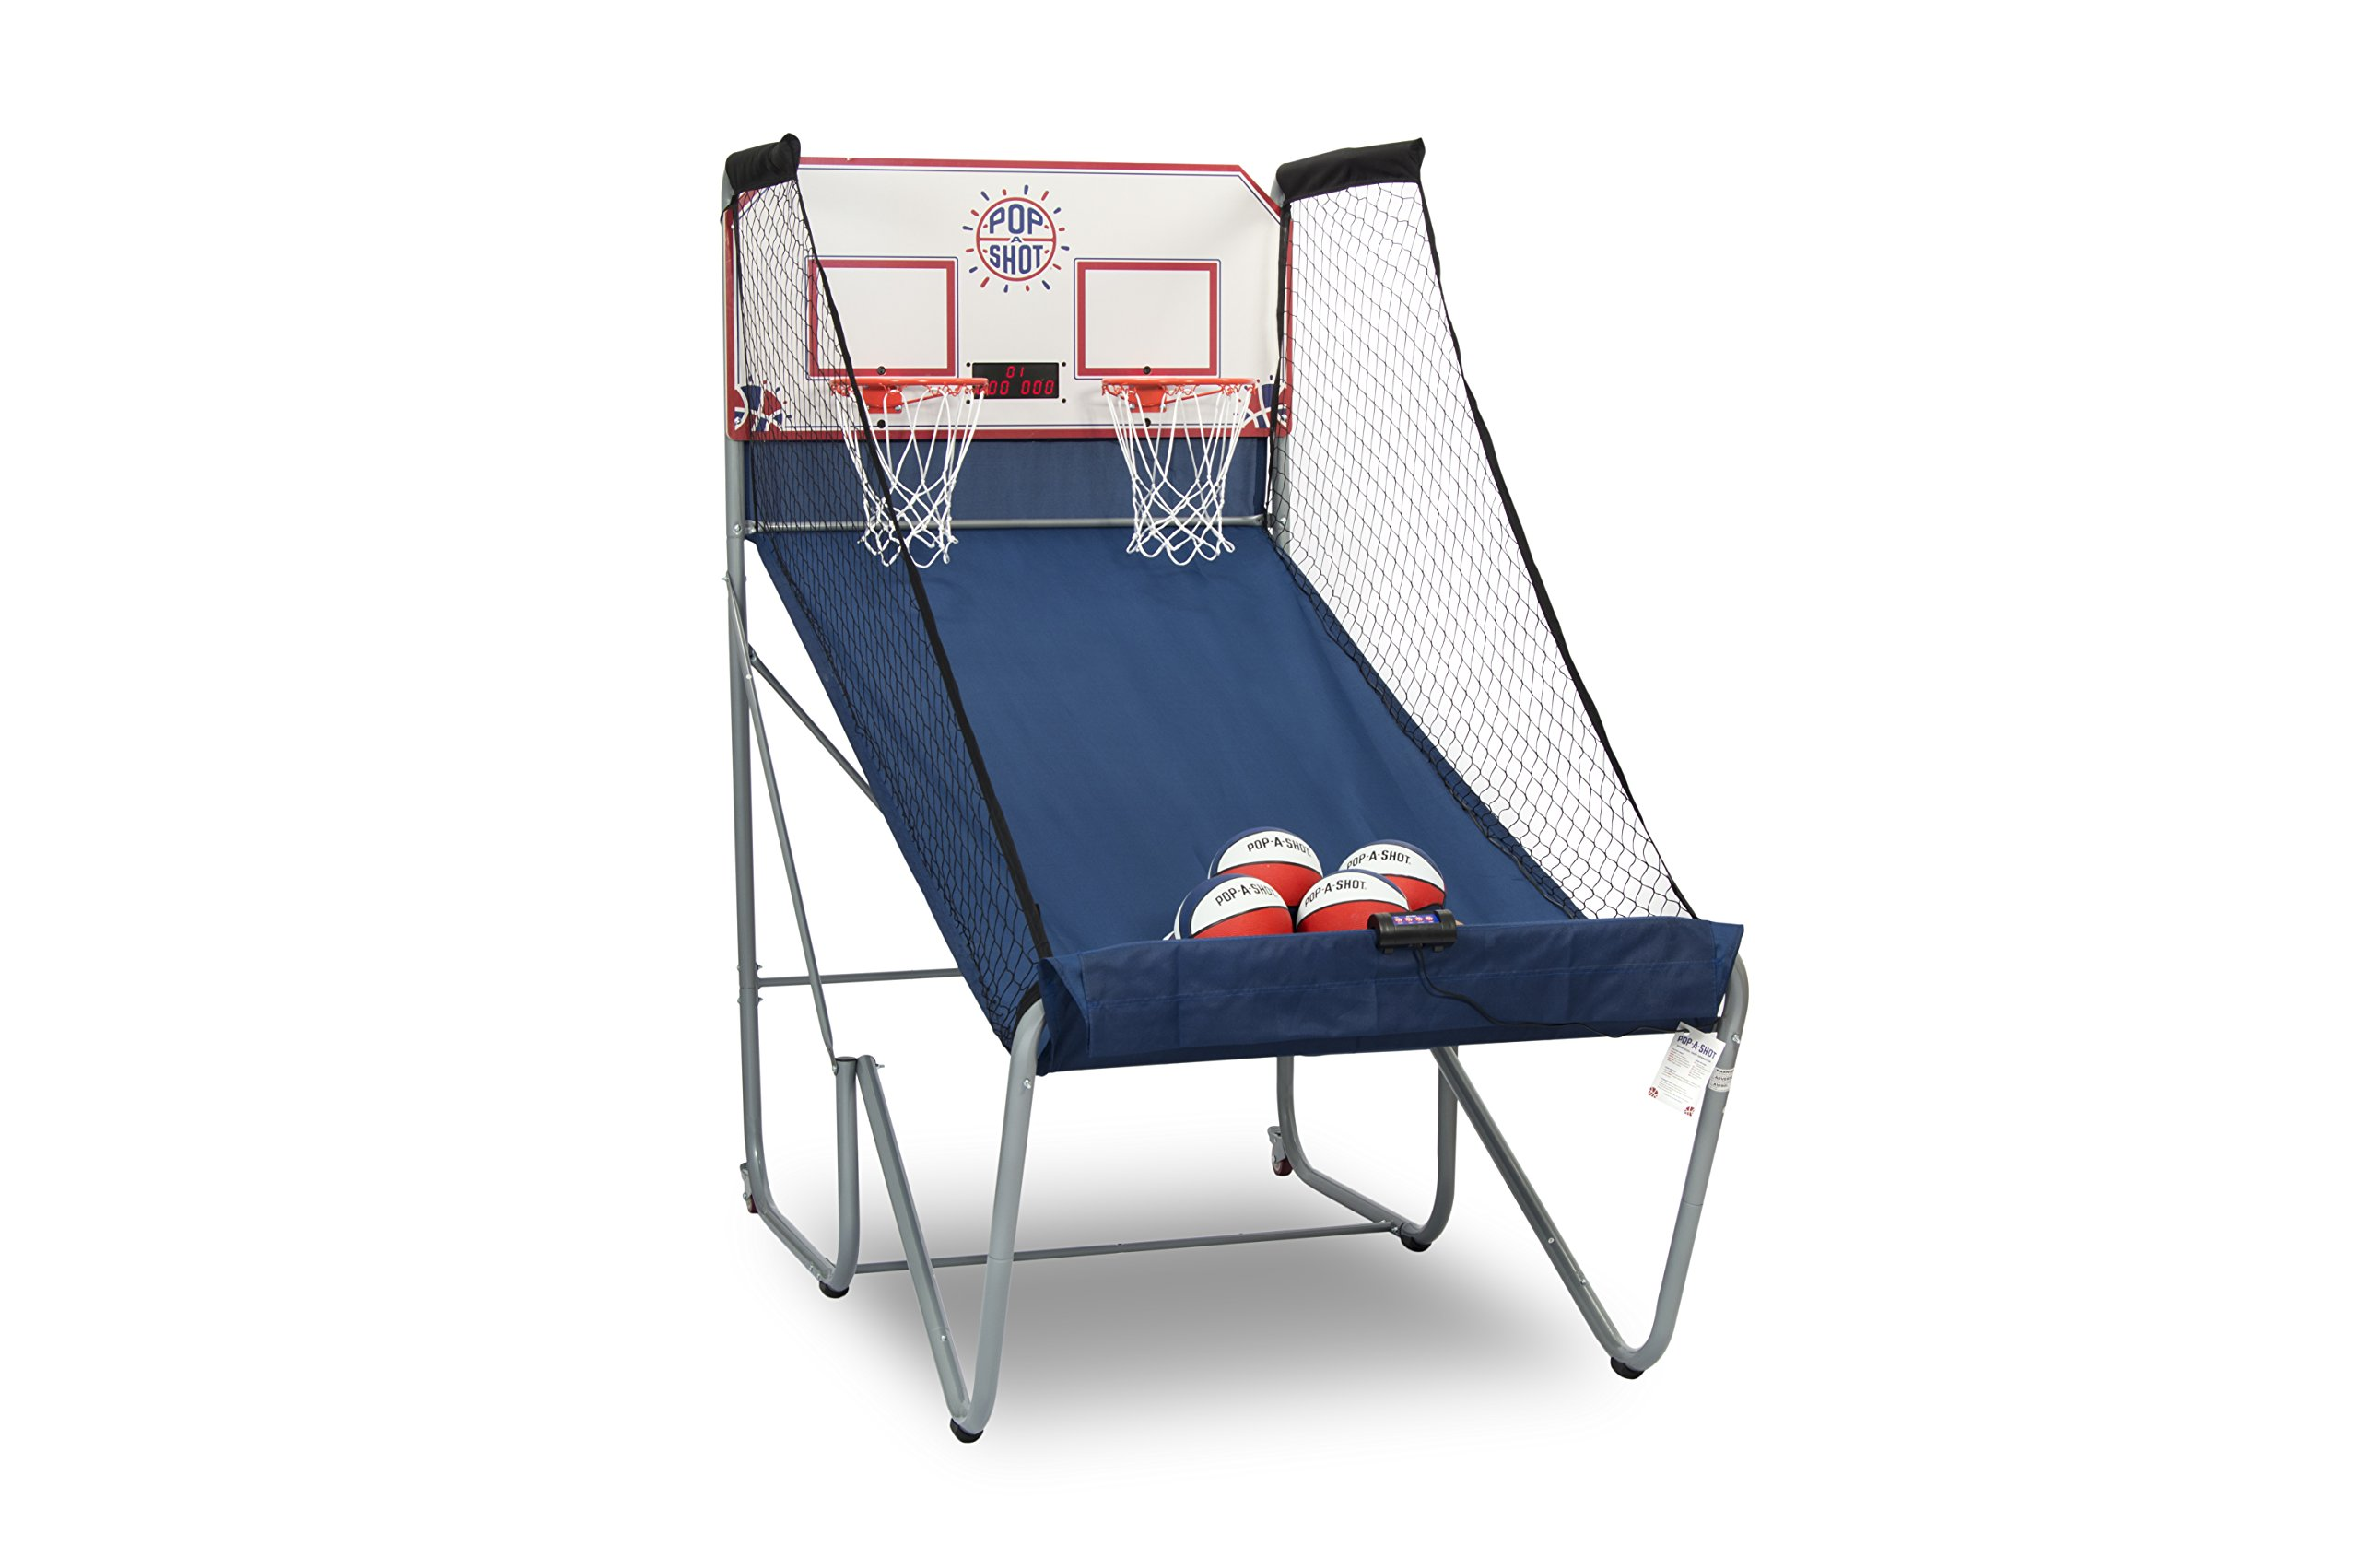 Official Pop-A-Shot – Home Dual Shot Basketball Arcade Game – 10 Individual Games – Durable Construction – Near 100% Scoring Accuracy – Multiple Height Settings – Large LED Scoring System by Pop-A-Shot